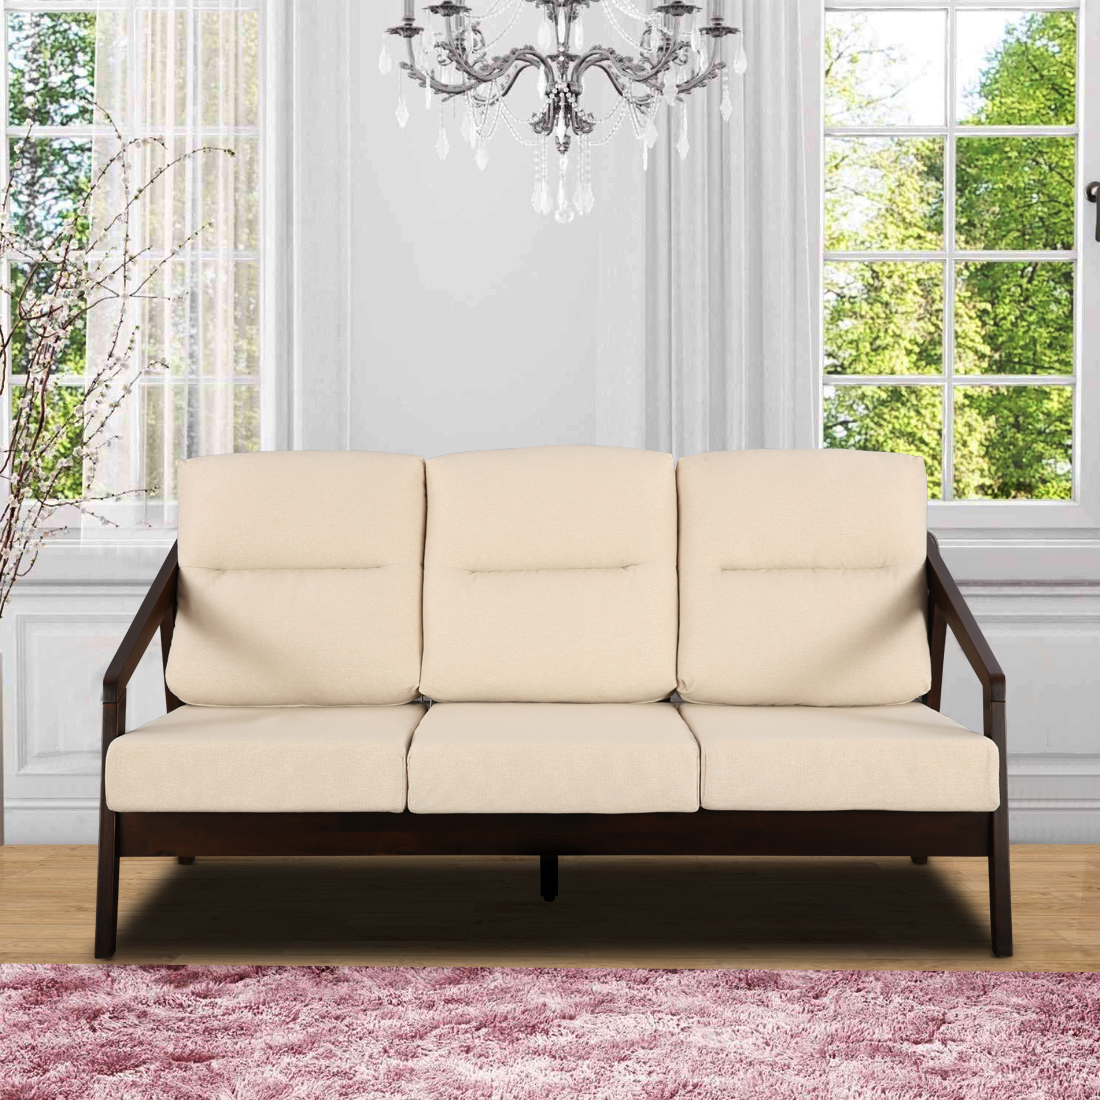 Borris Solid Wood Three Seater Sofa With Cushions in Beige Colour by HomeTown